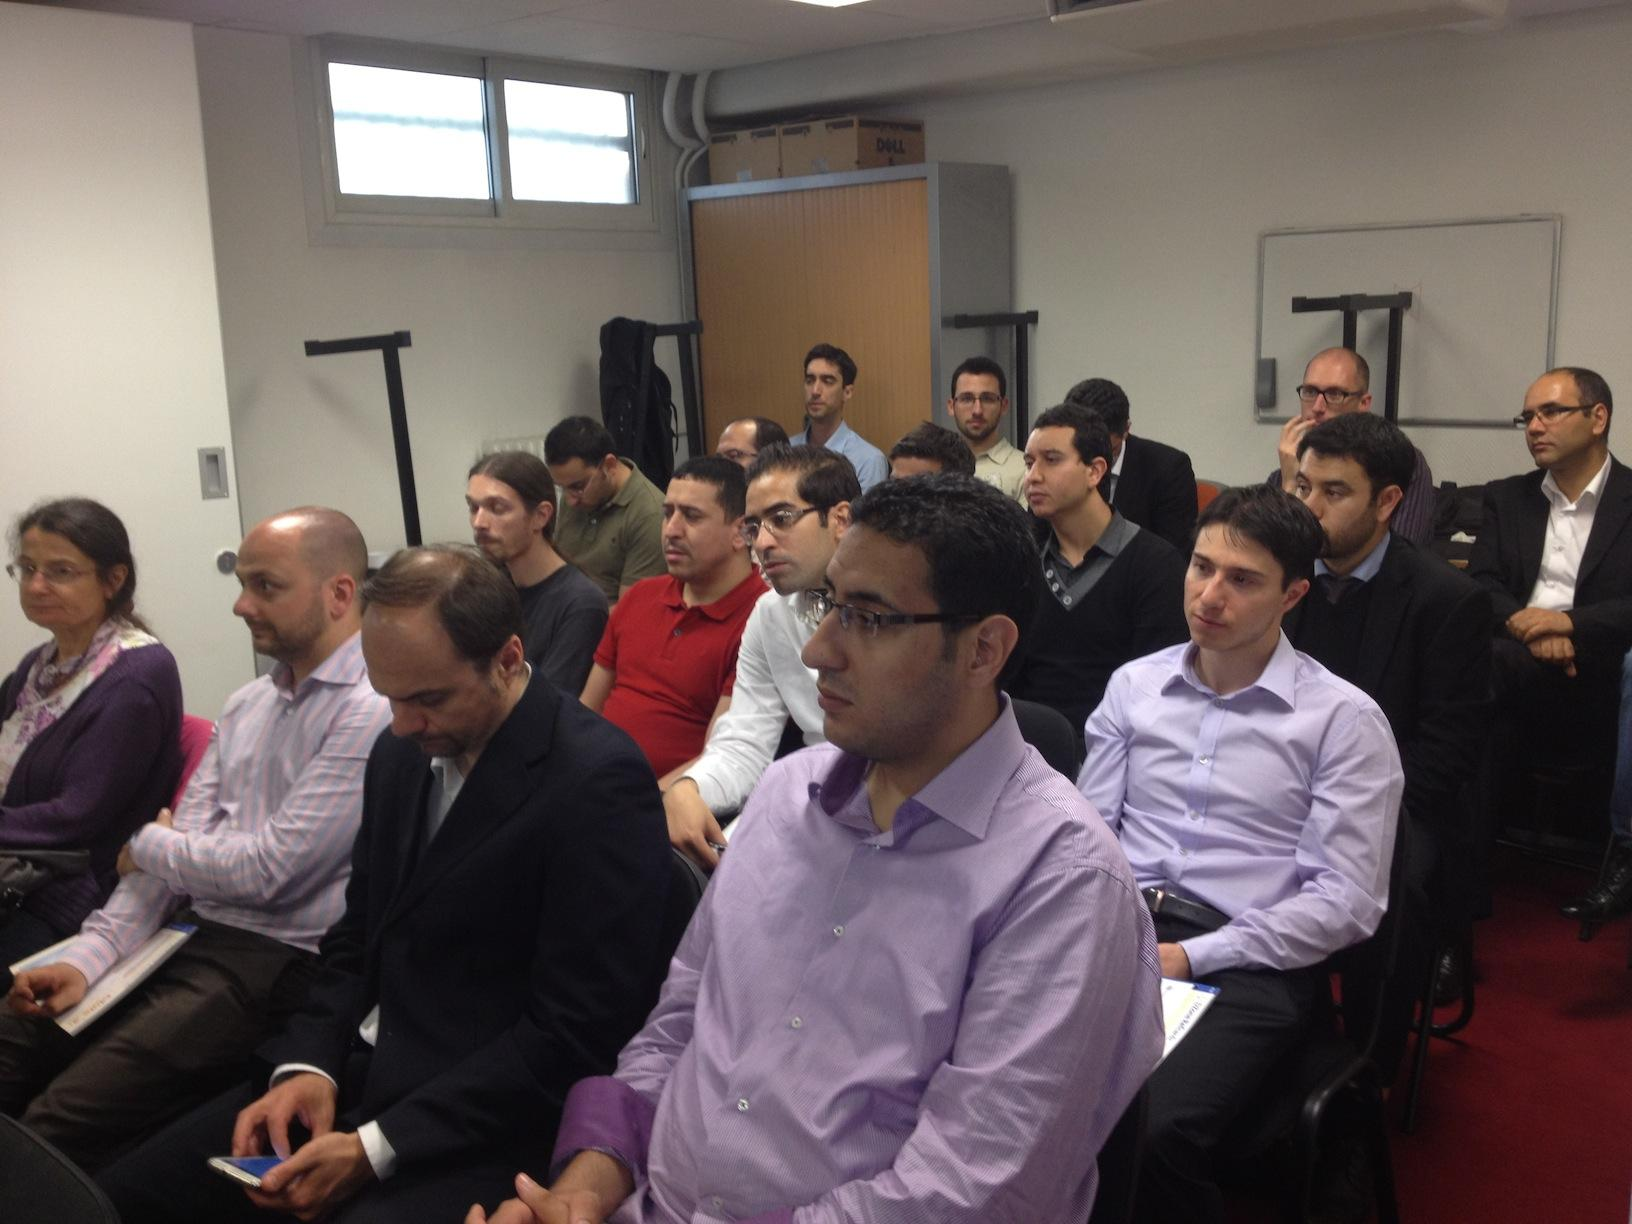 [Paris Mule ESB 3.3 User Group] Jai particip au premier MULE USER GROUP Paris chez FastConnect Paris